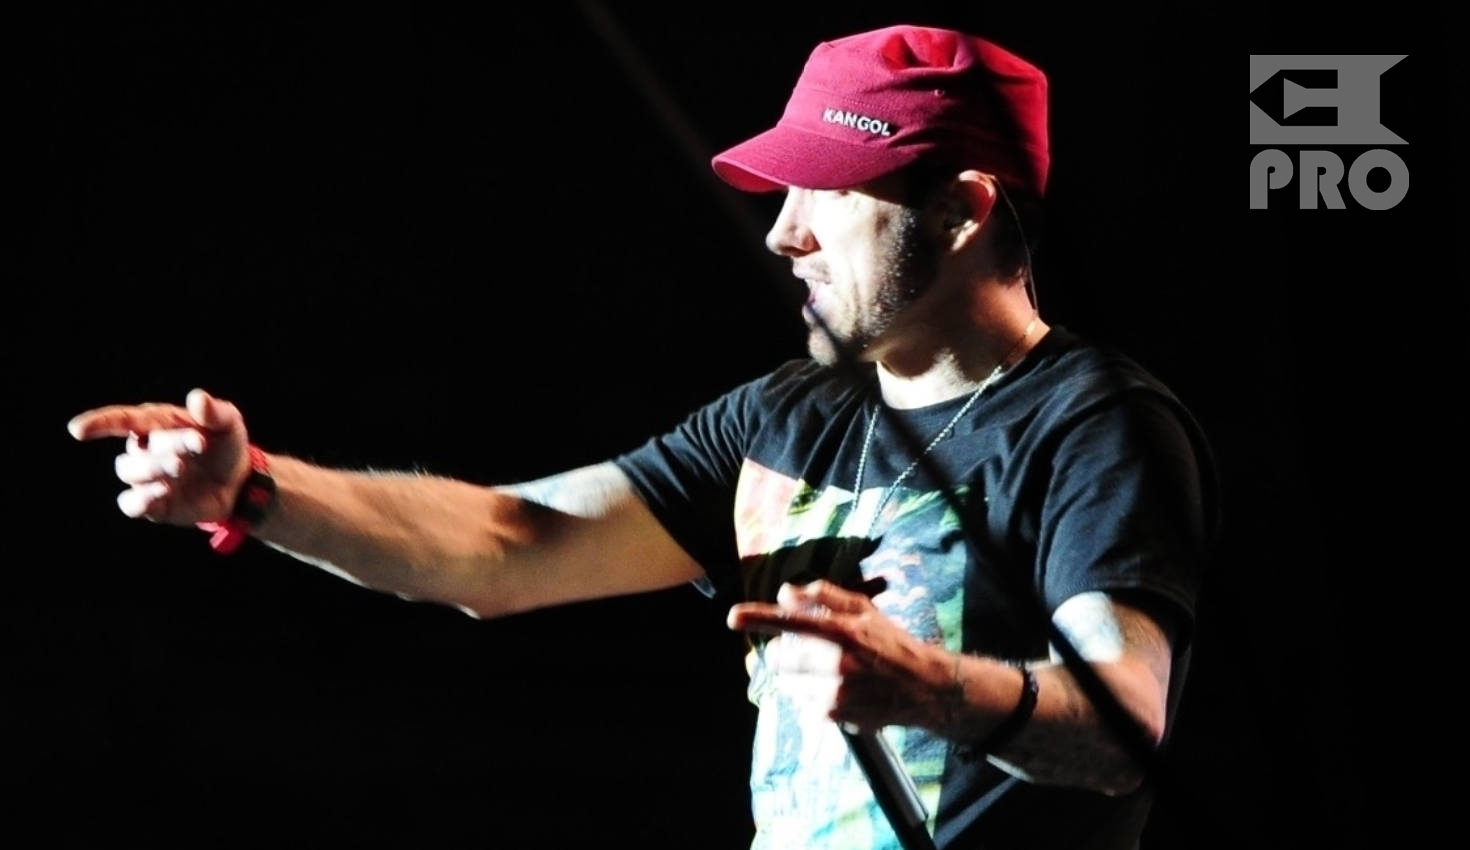 ePro reports from Eminem's shows in the UK